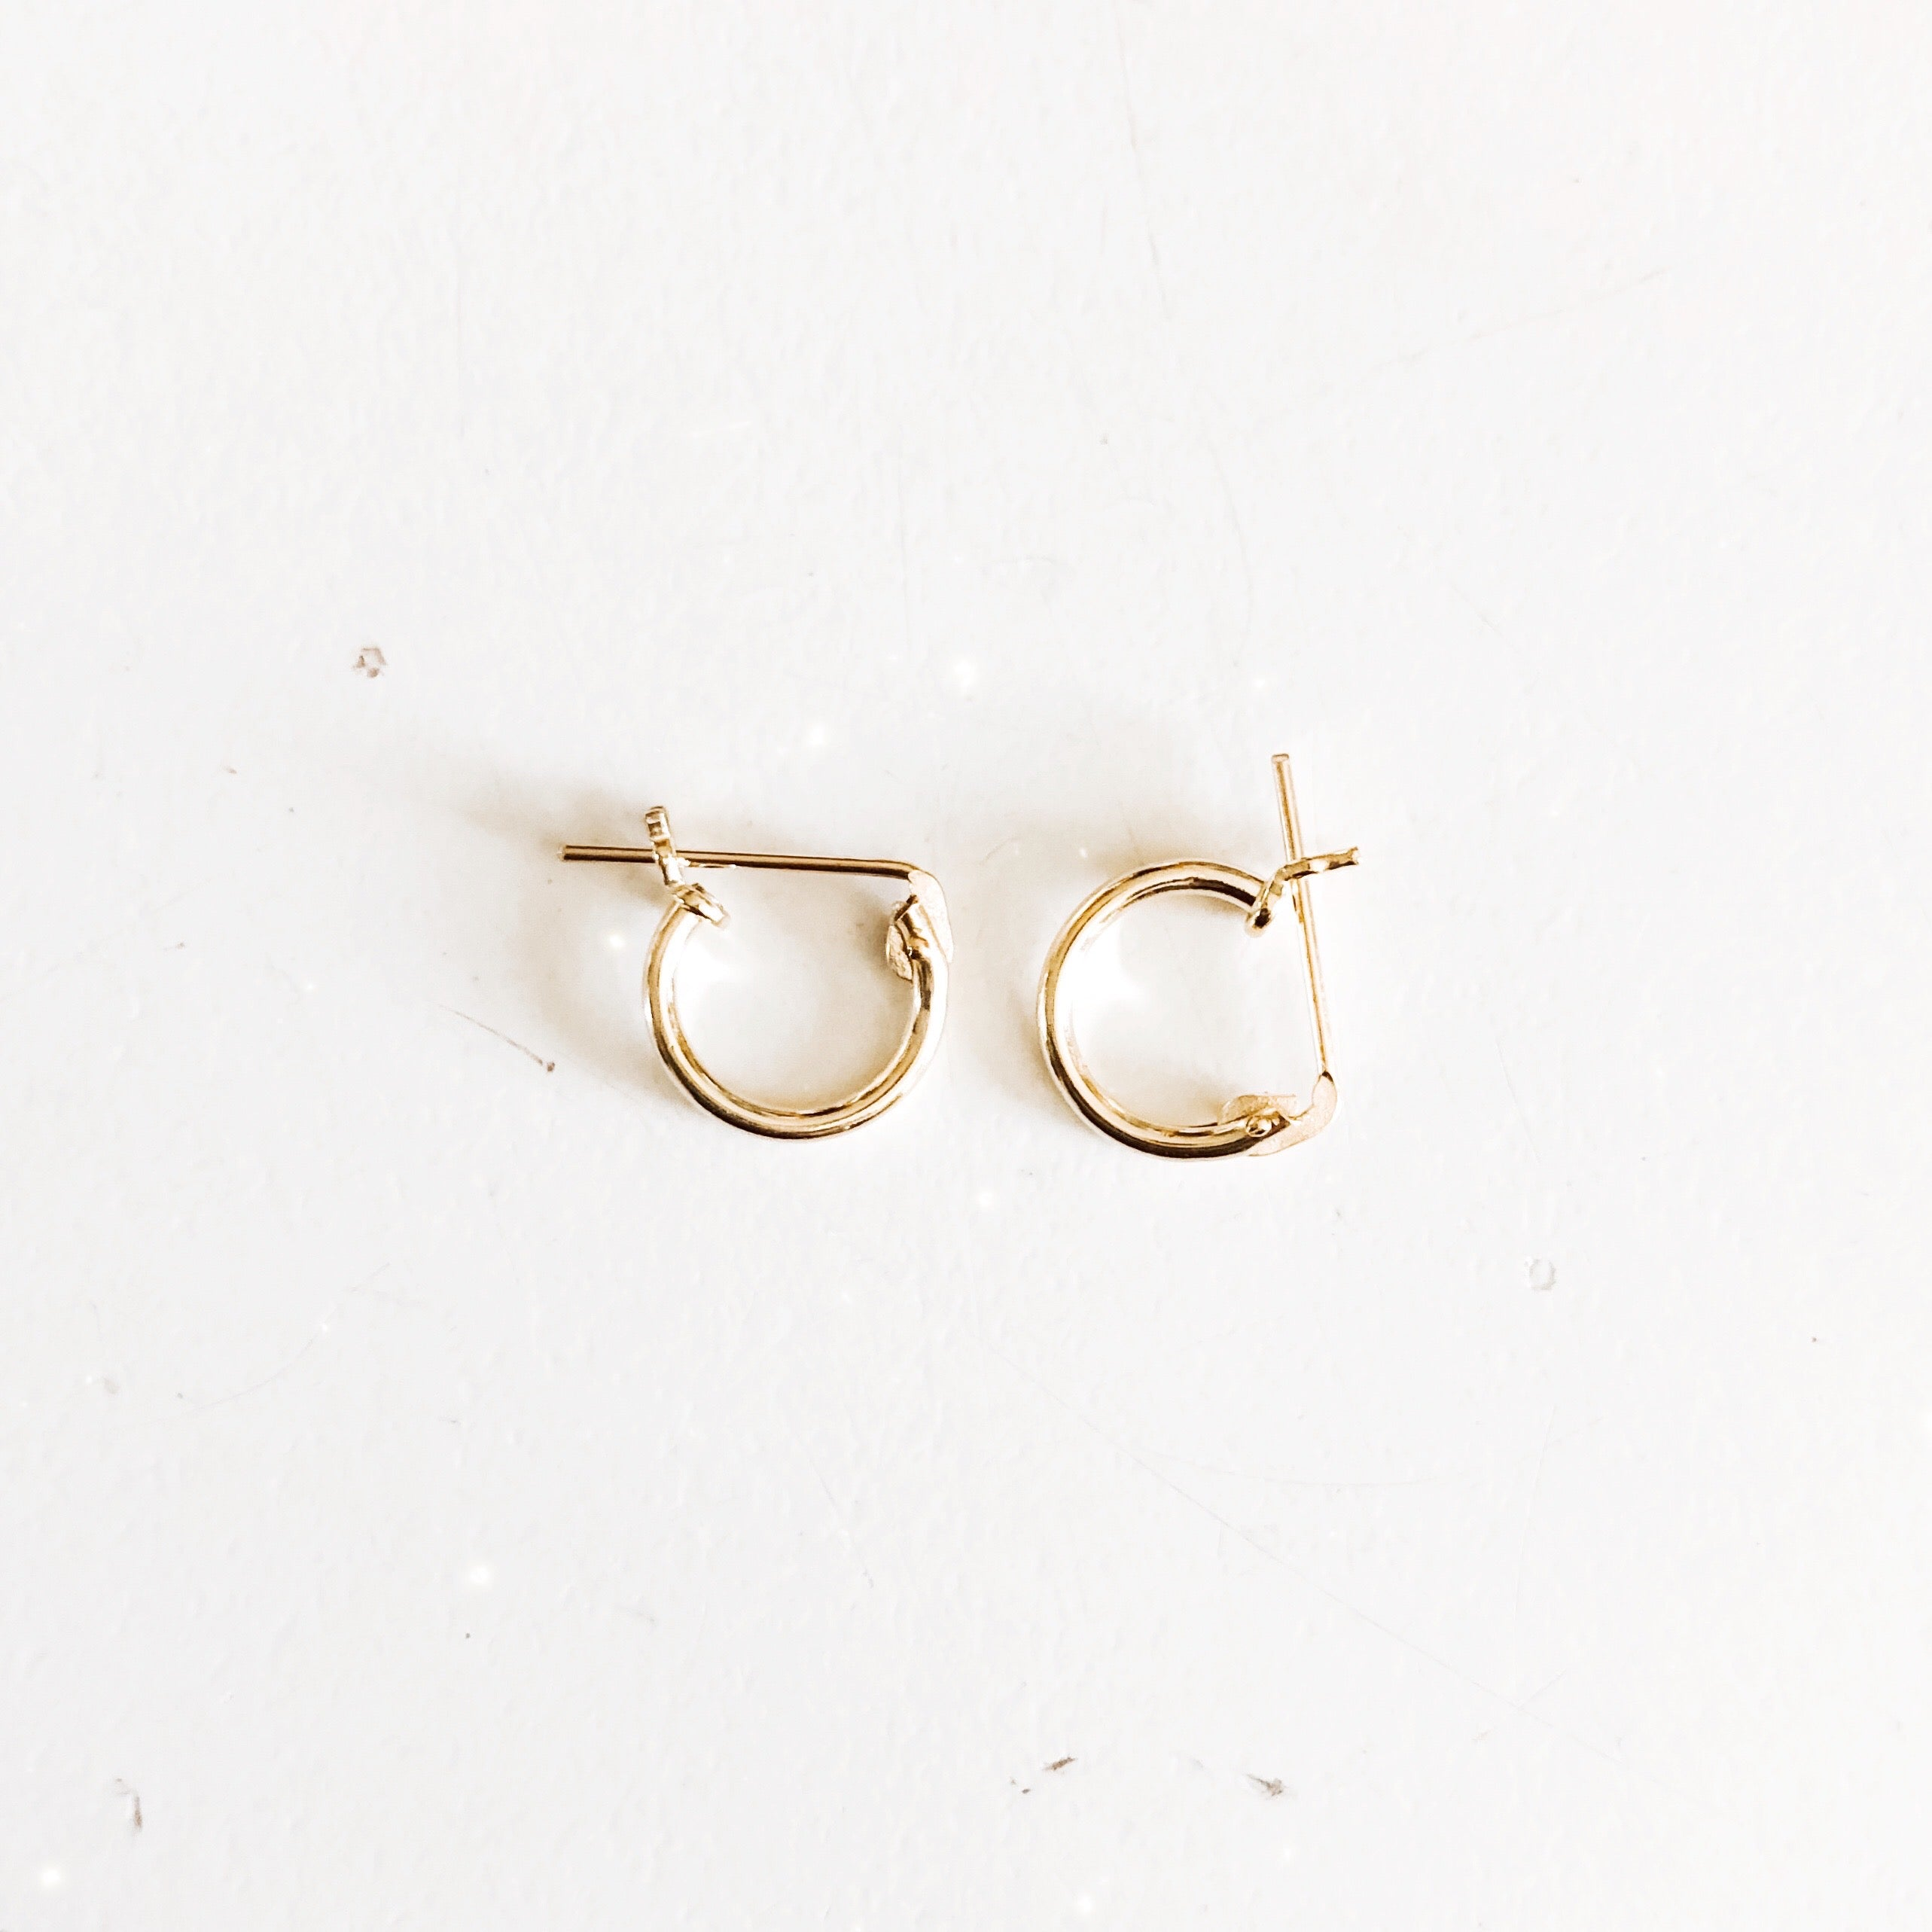 Everyday Tiny Hoop Earrings